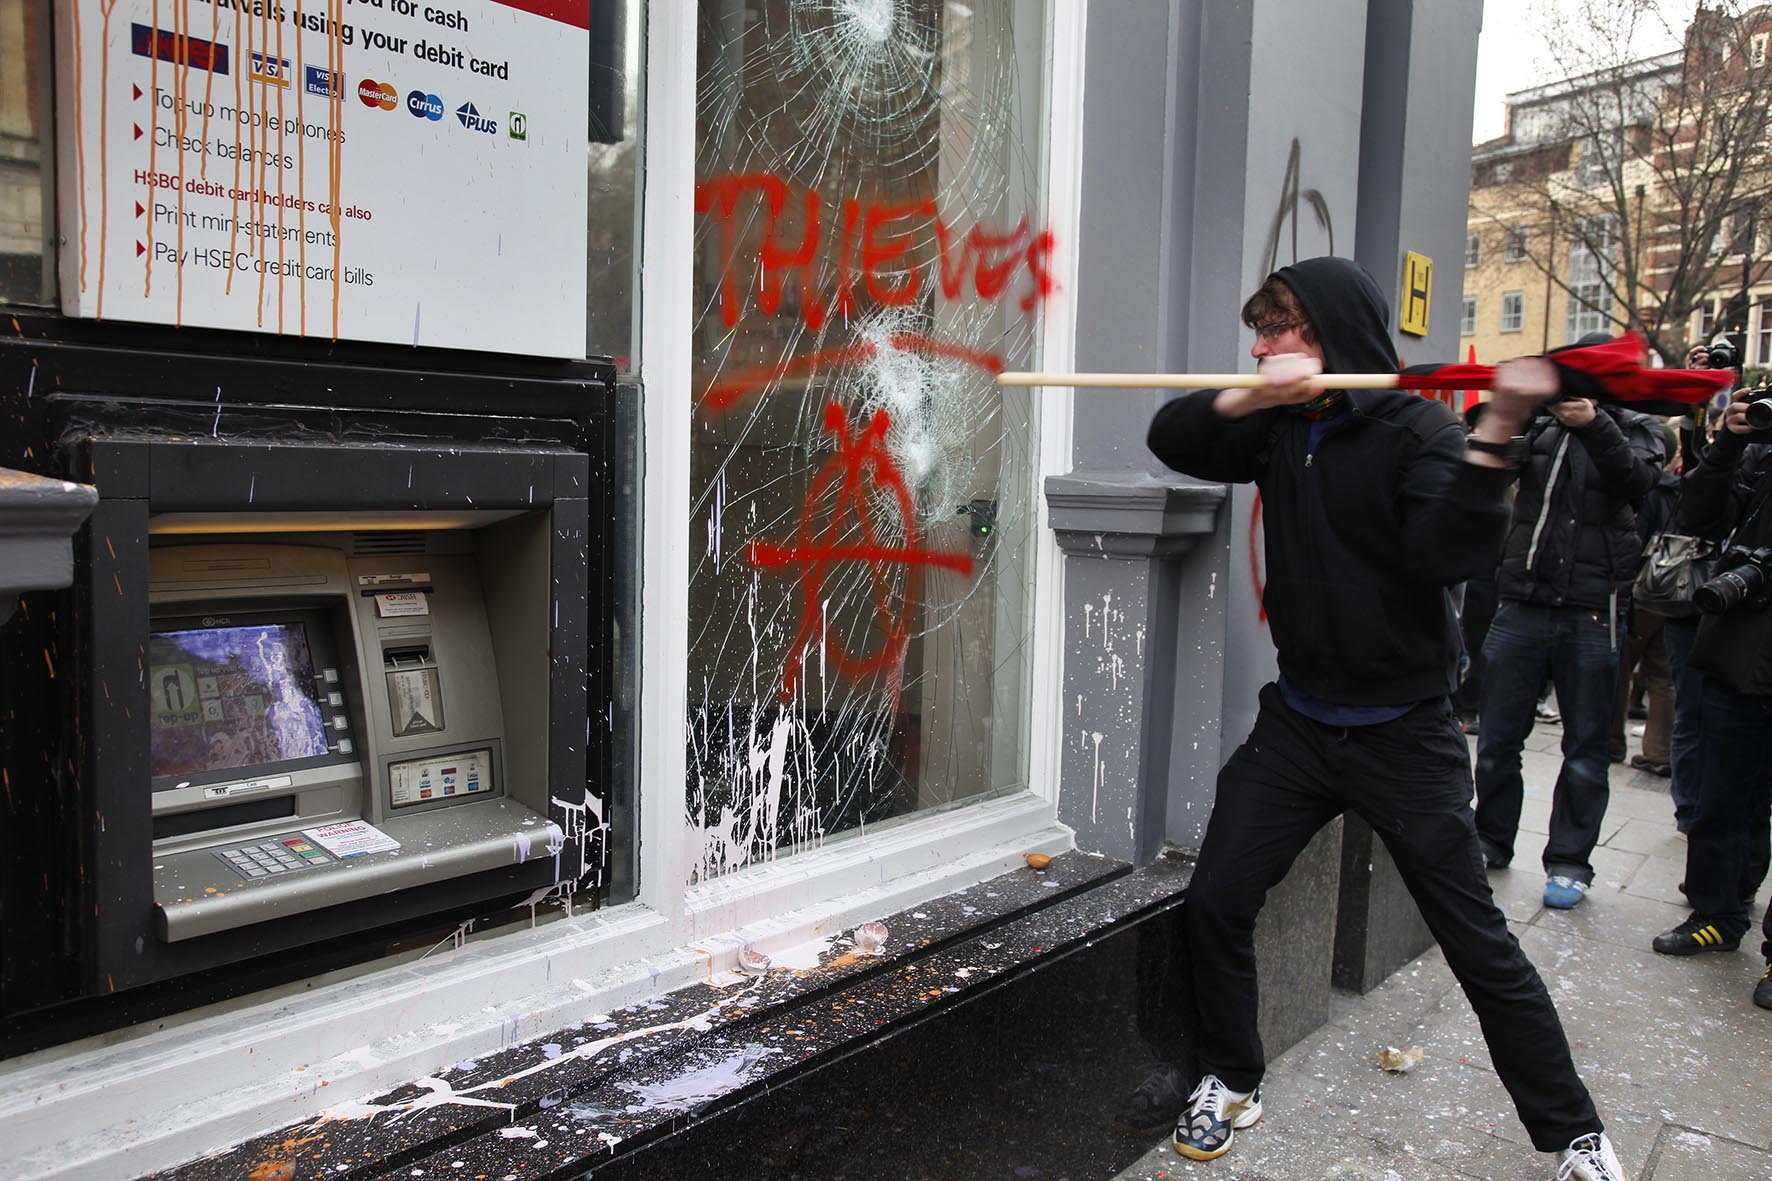 Anti capitalists / anarchists go on the rampage through central London on the back of the peaceful TUC protest march.